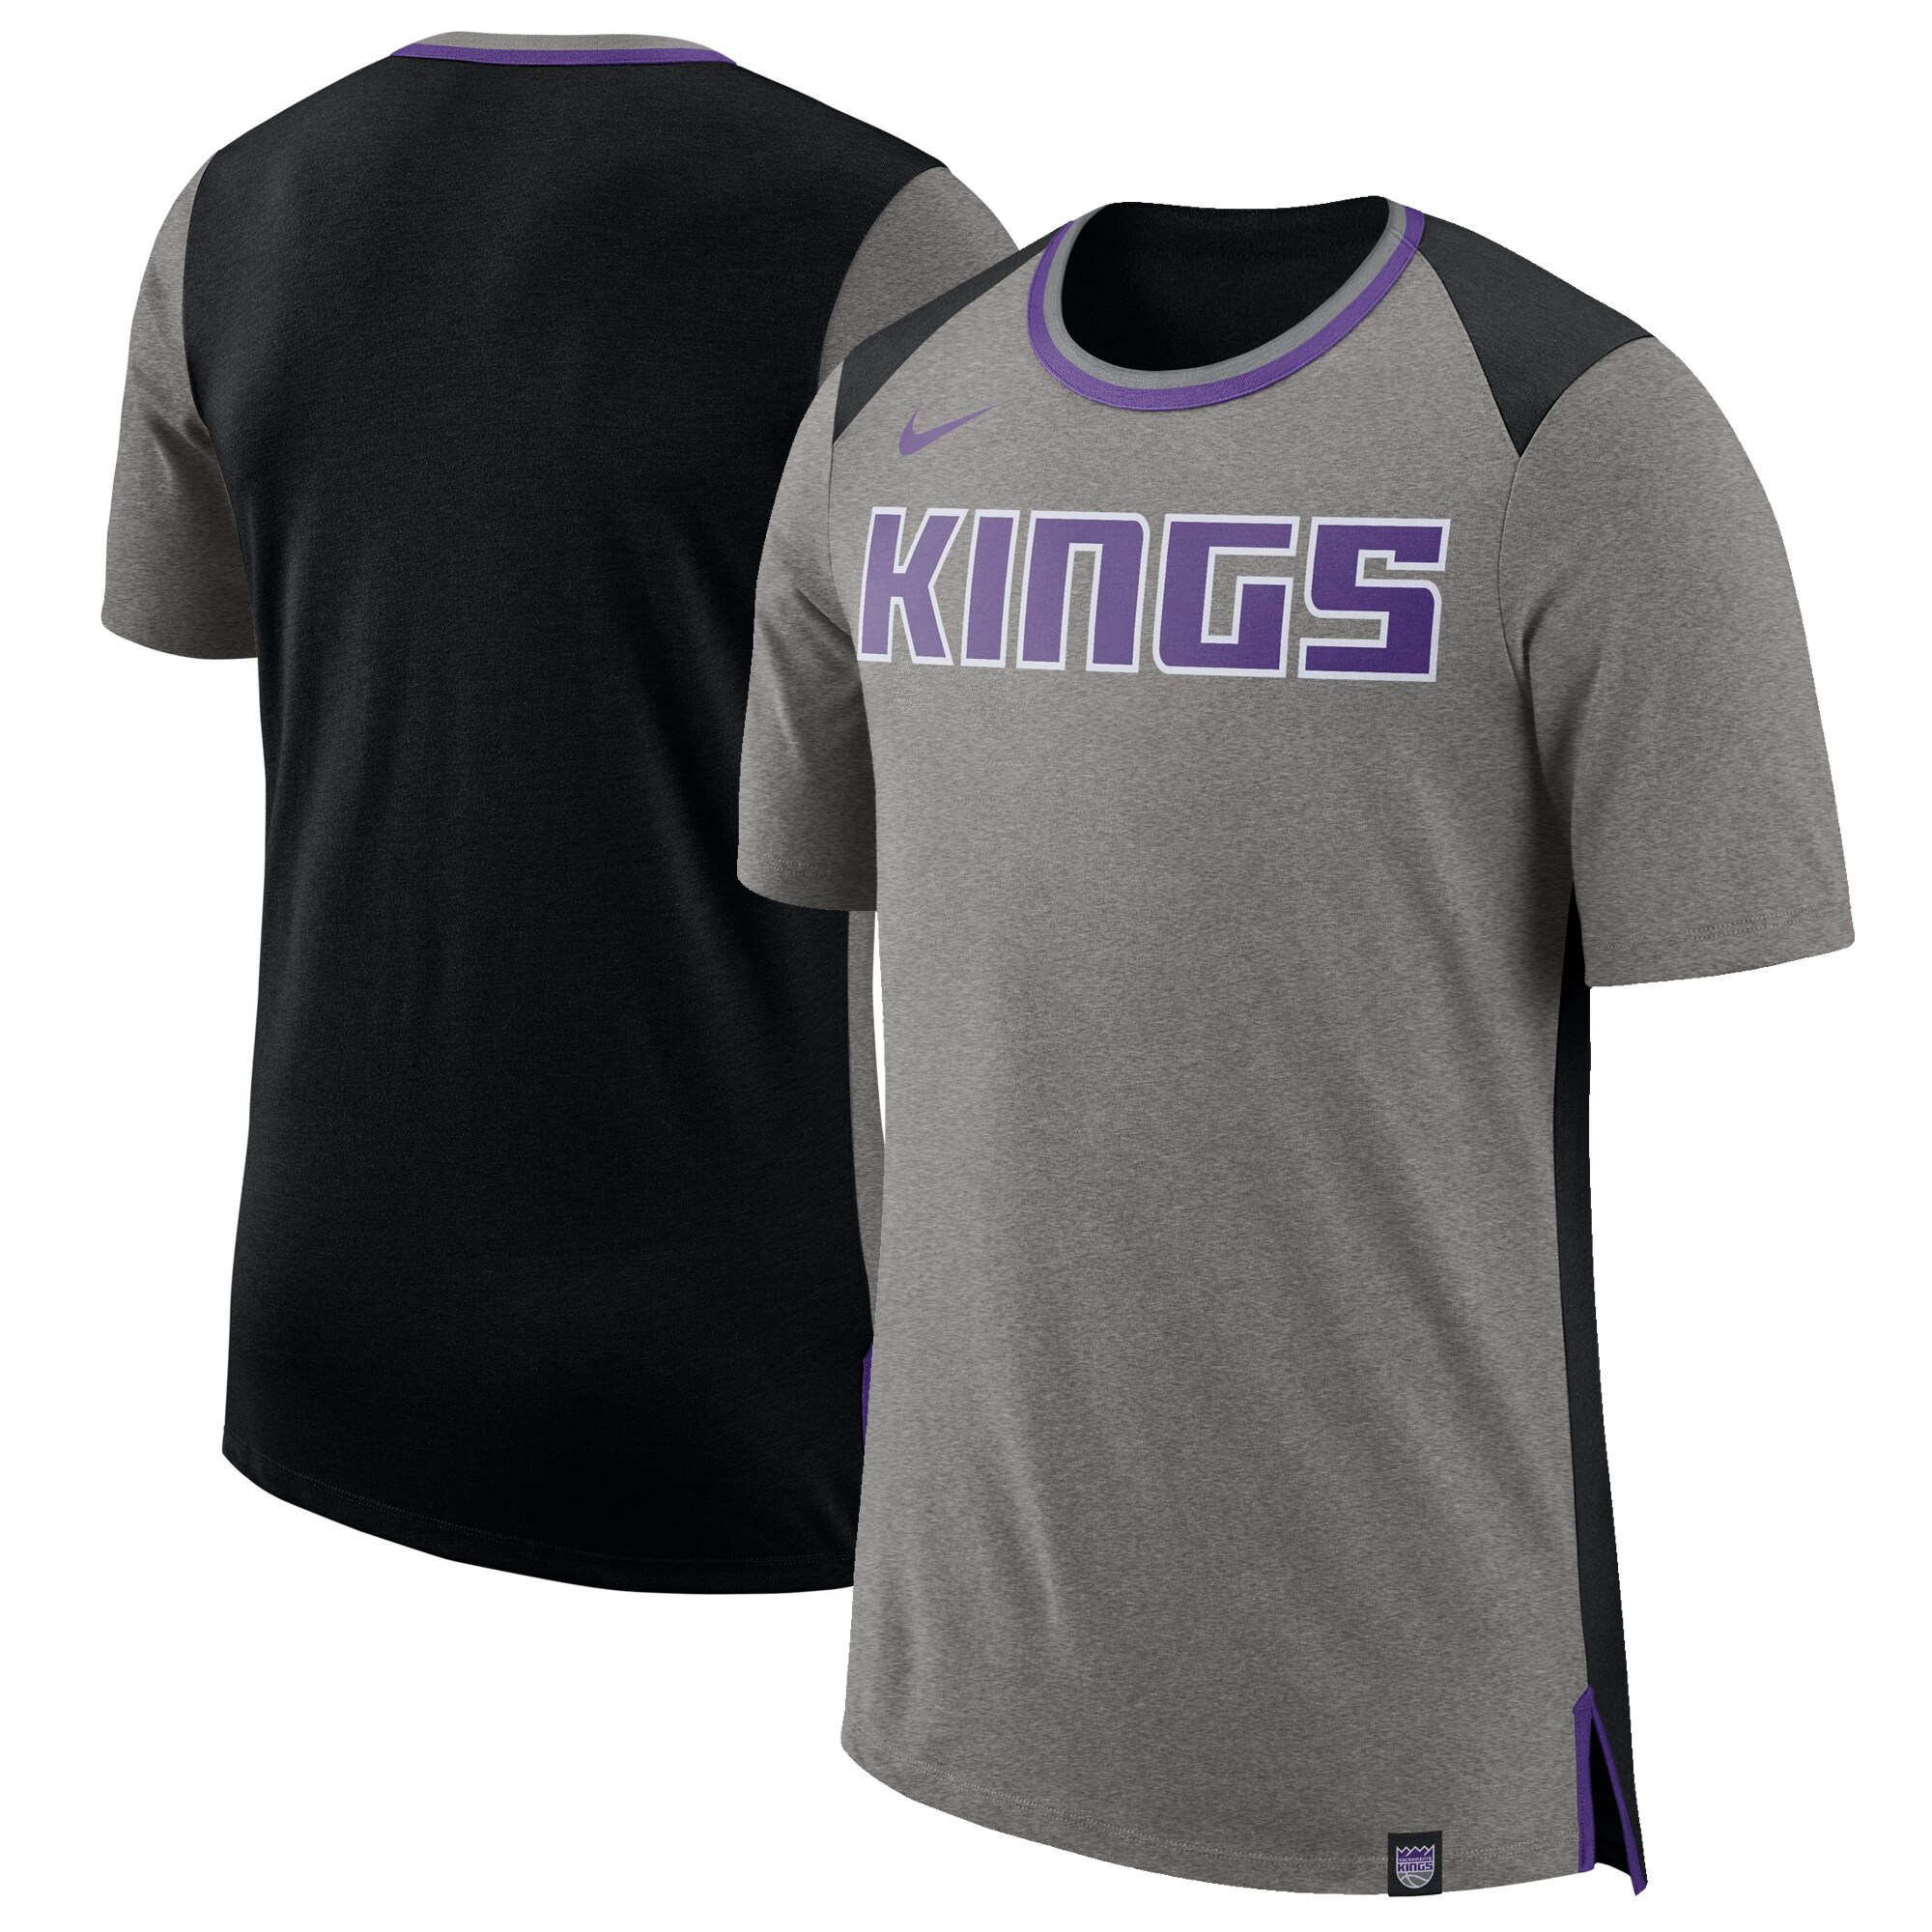 Sacramento Kings Nike Basketball Fan T-Shirt - Gray